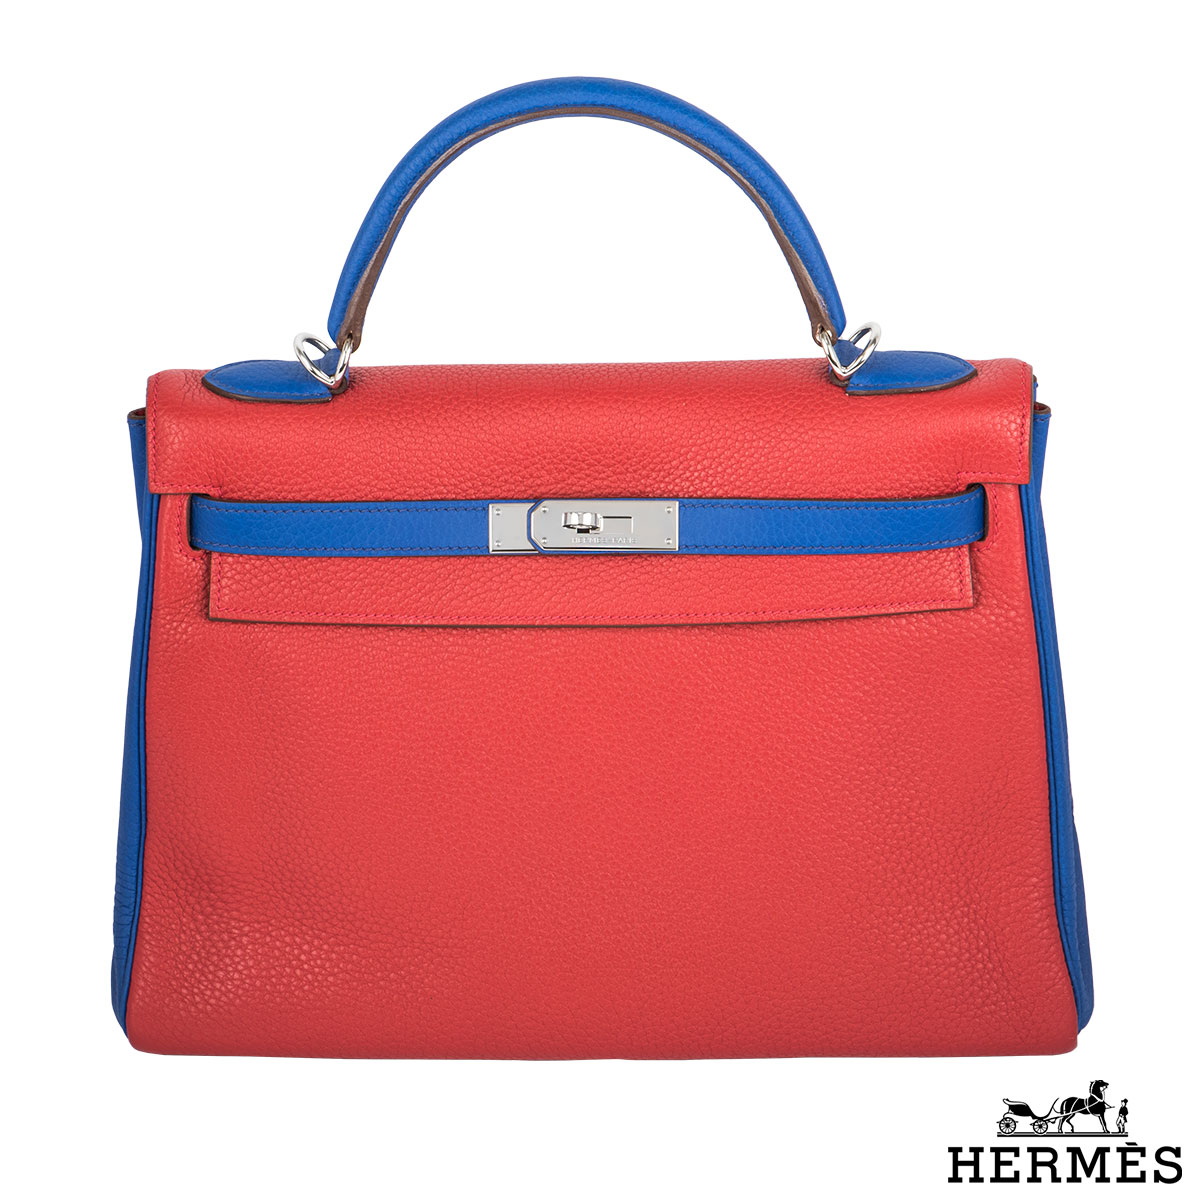 Hermès 32cm PHW Horseshoe Kelly Bag